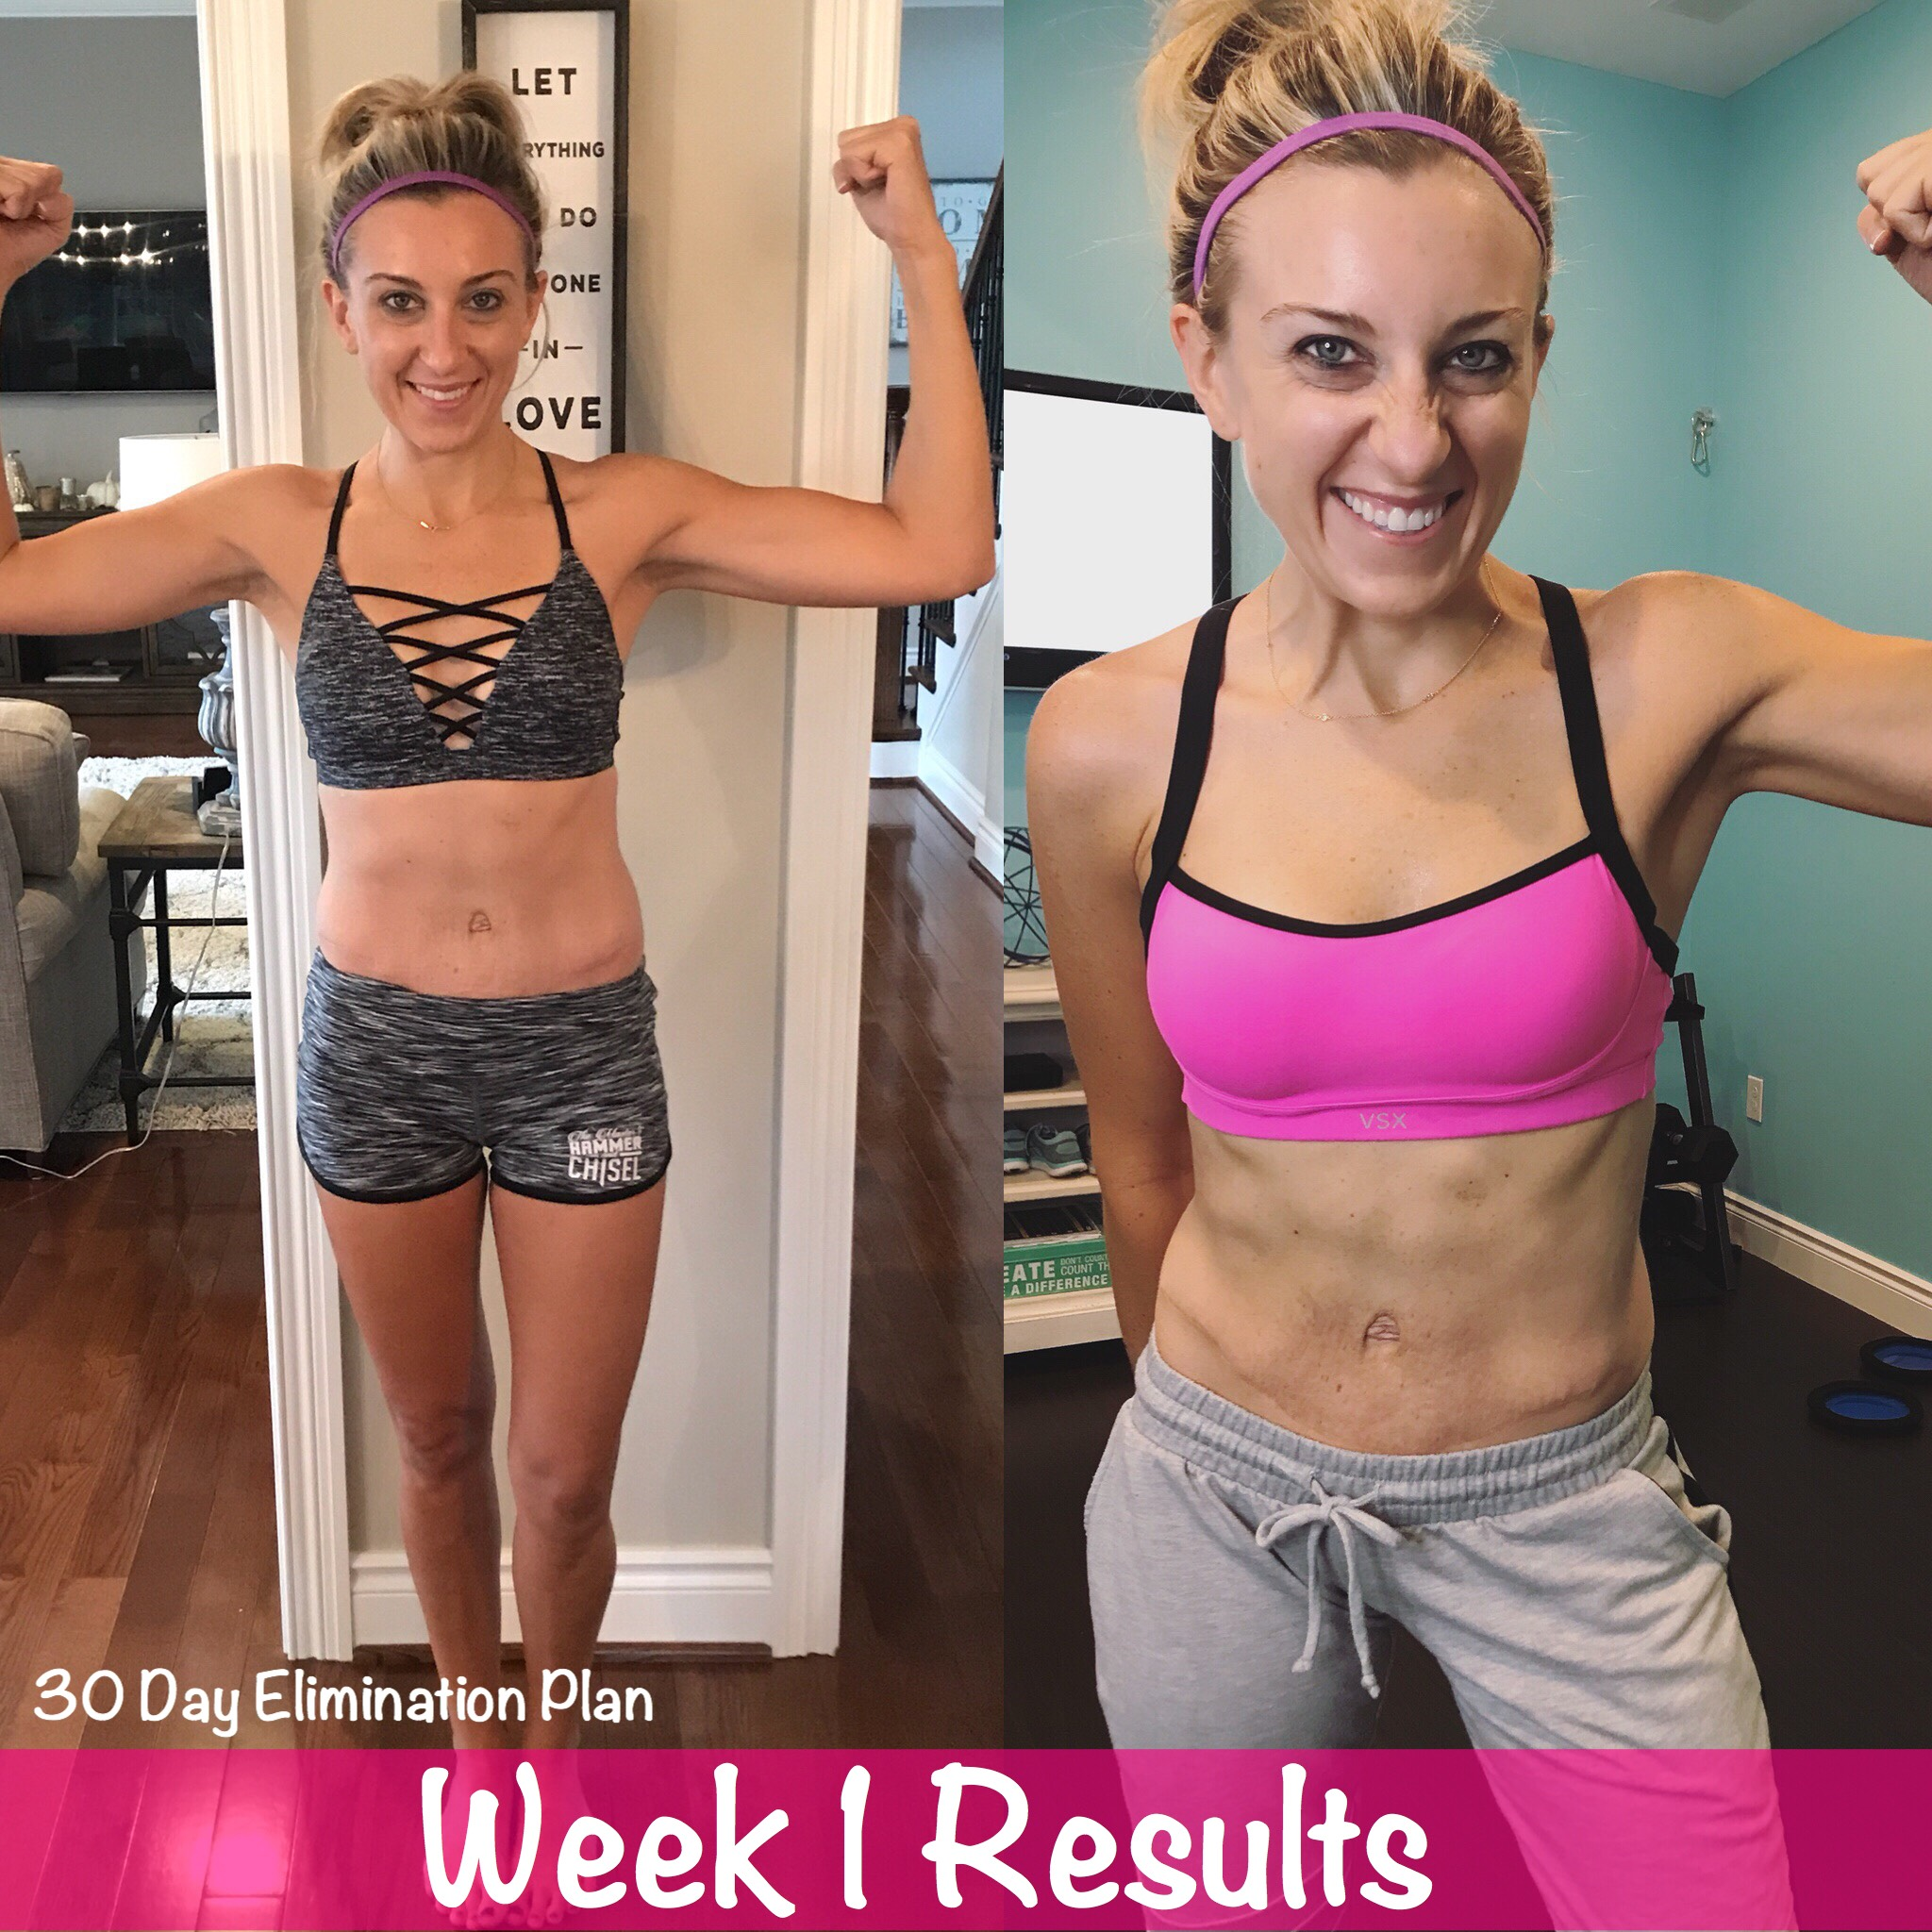 30 day elimination plan, Melanie Mitro, Top Coach, 21 Day Fix Extreme, Shakeology, Intermittent Fasting, Bullet Proof Coffee